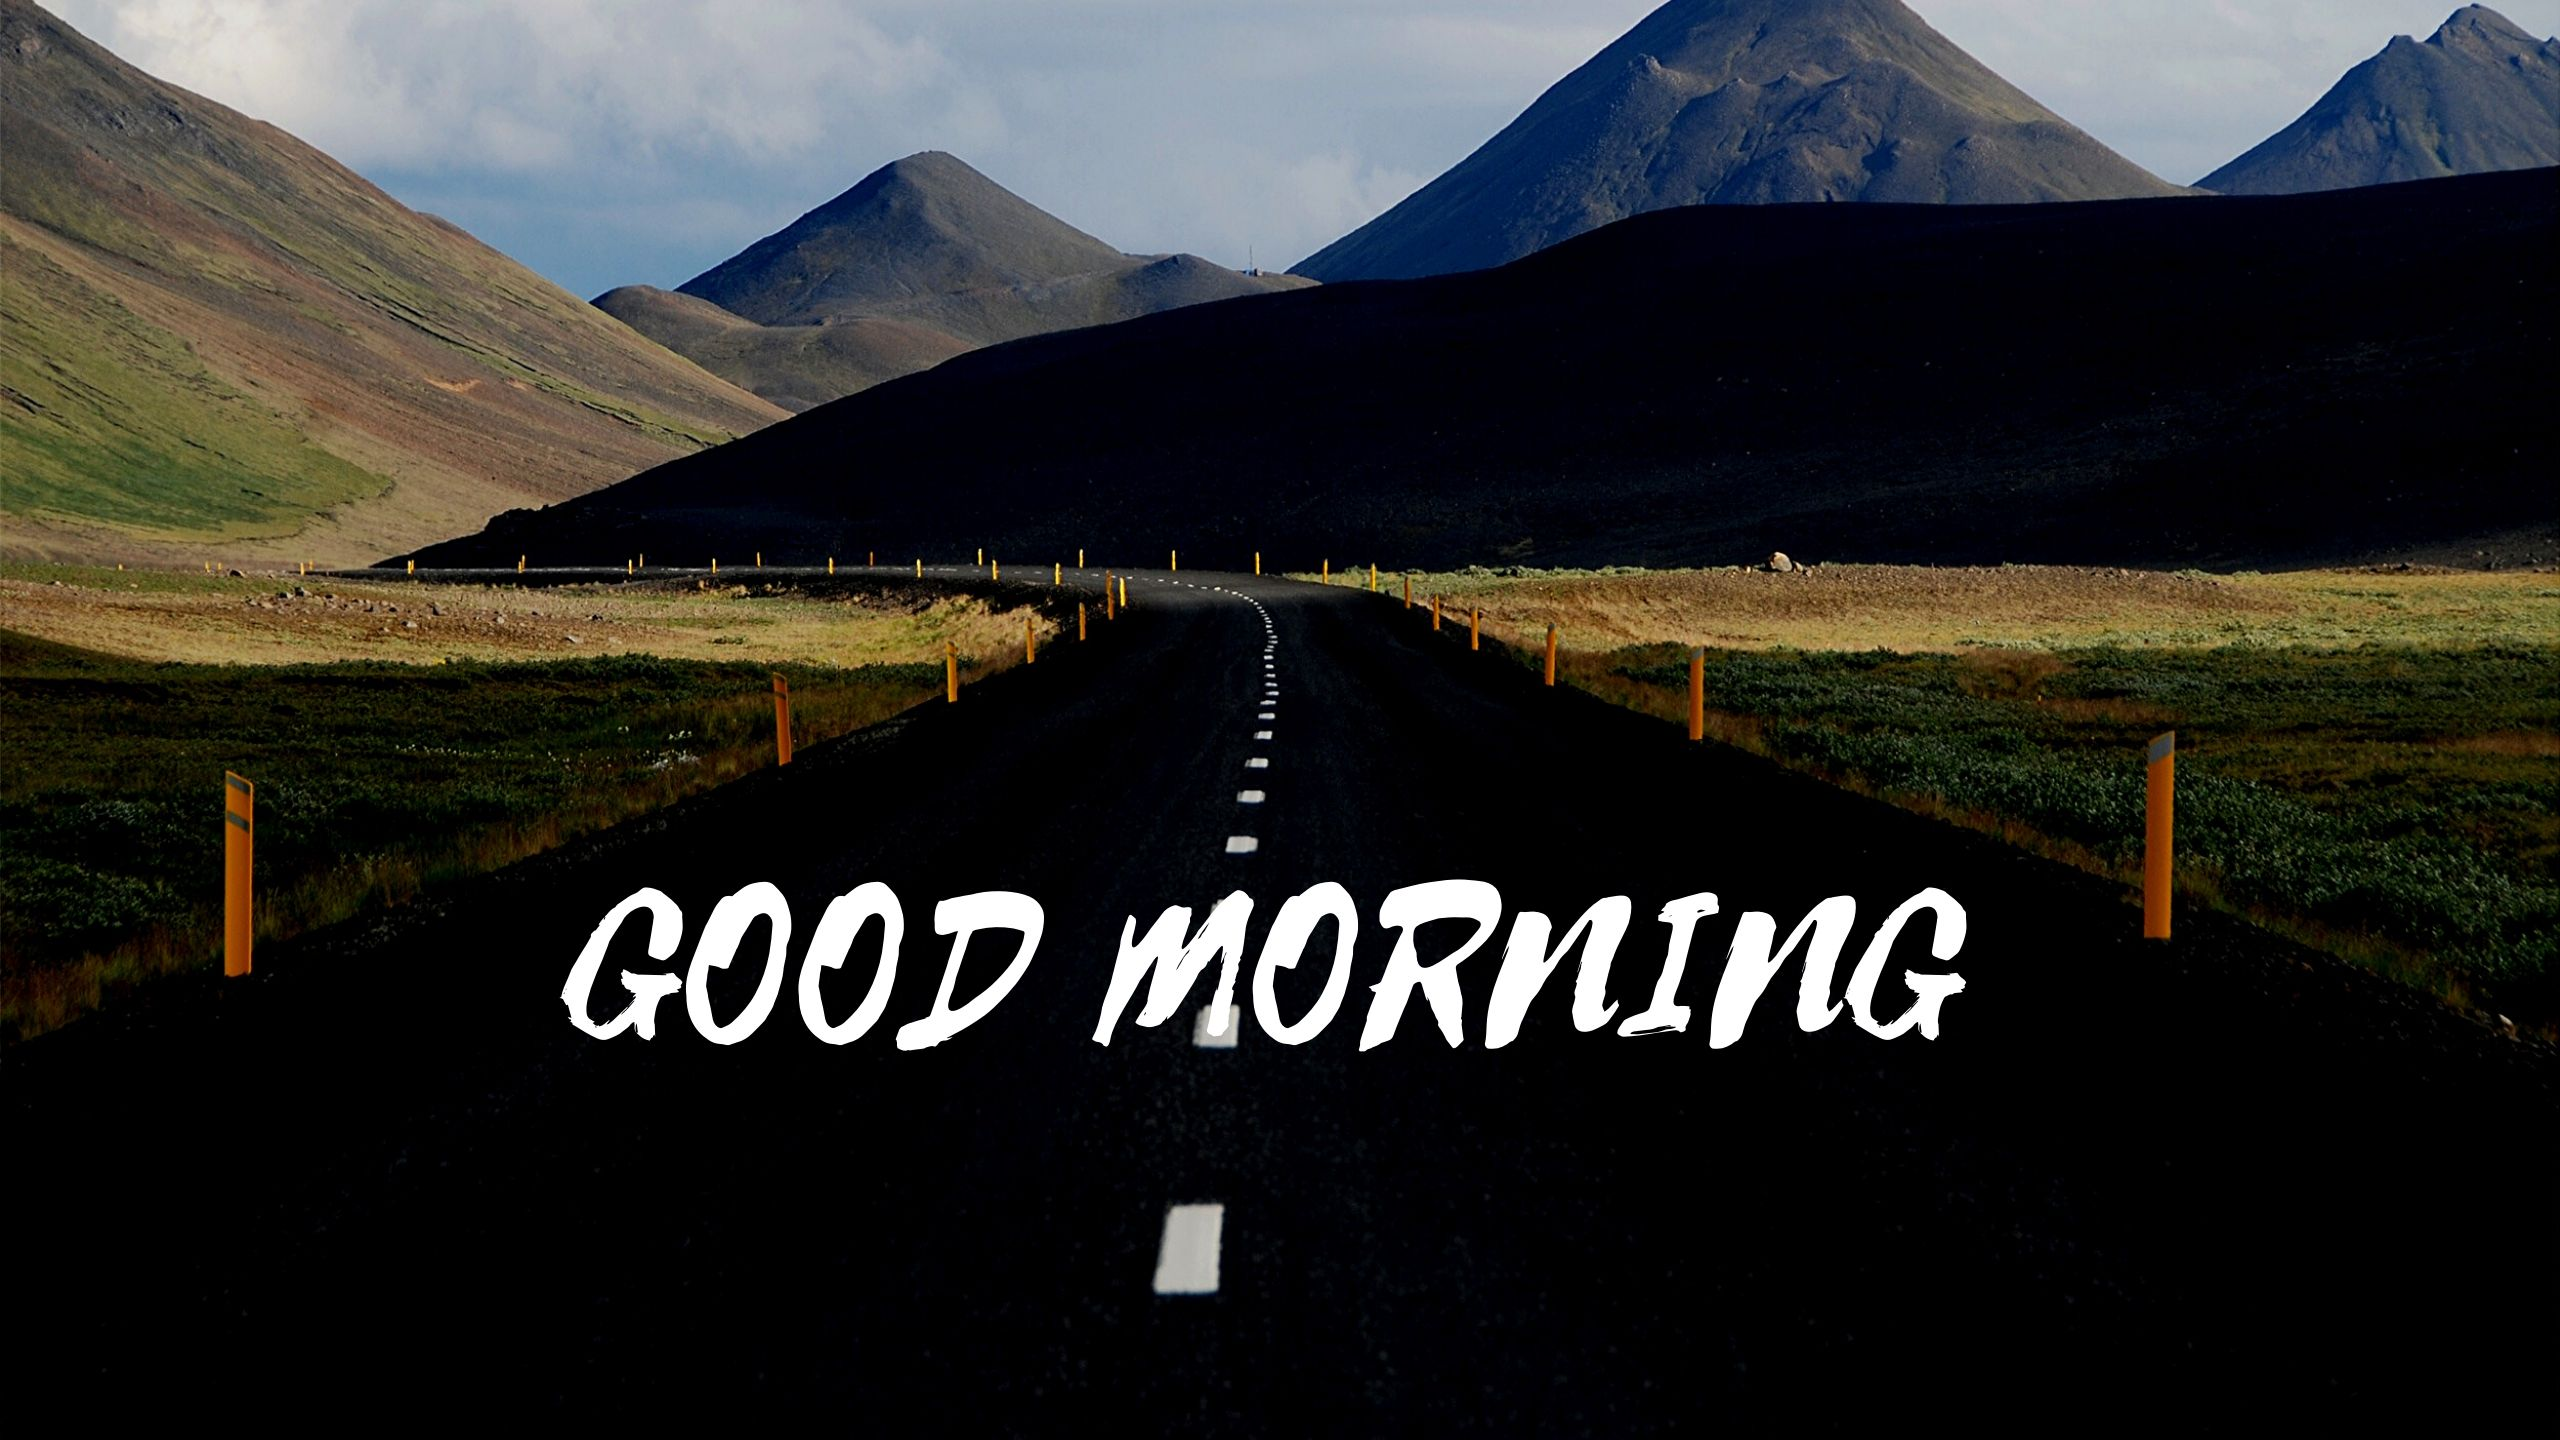 Good Morning Image of Road Mountain Green full HD free download.